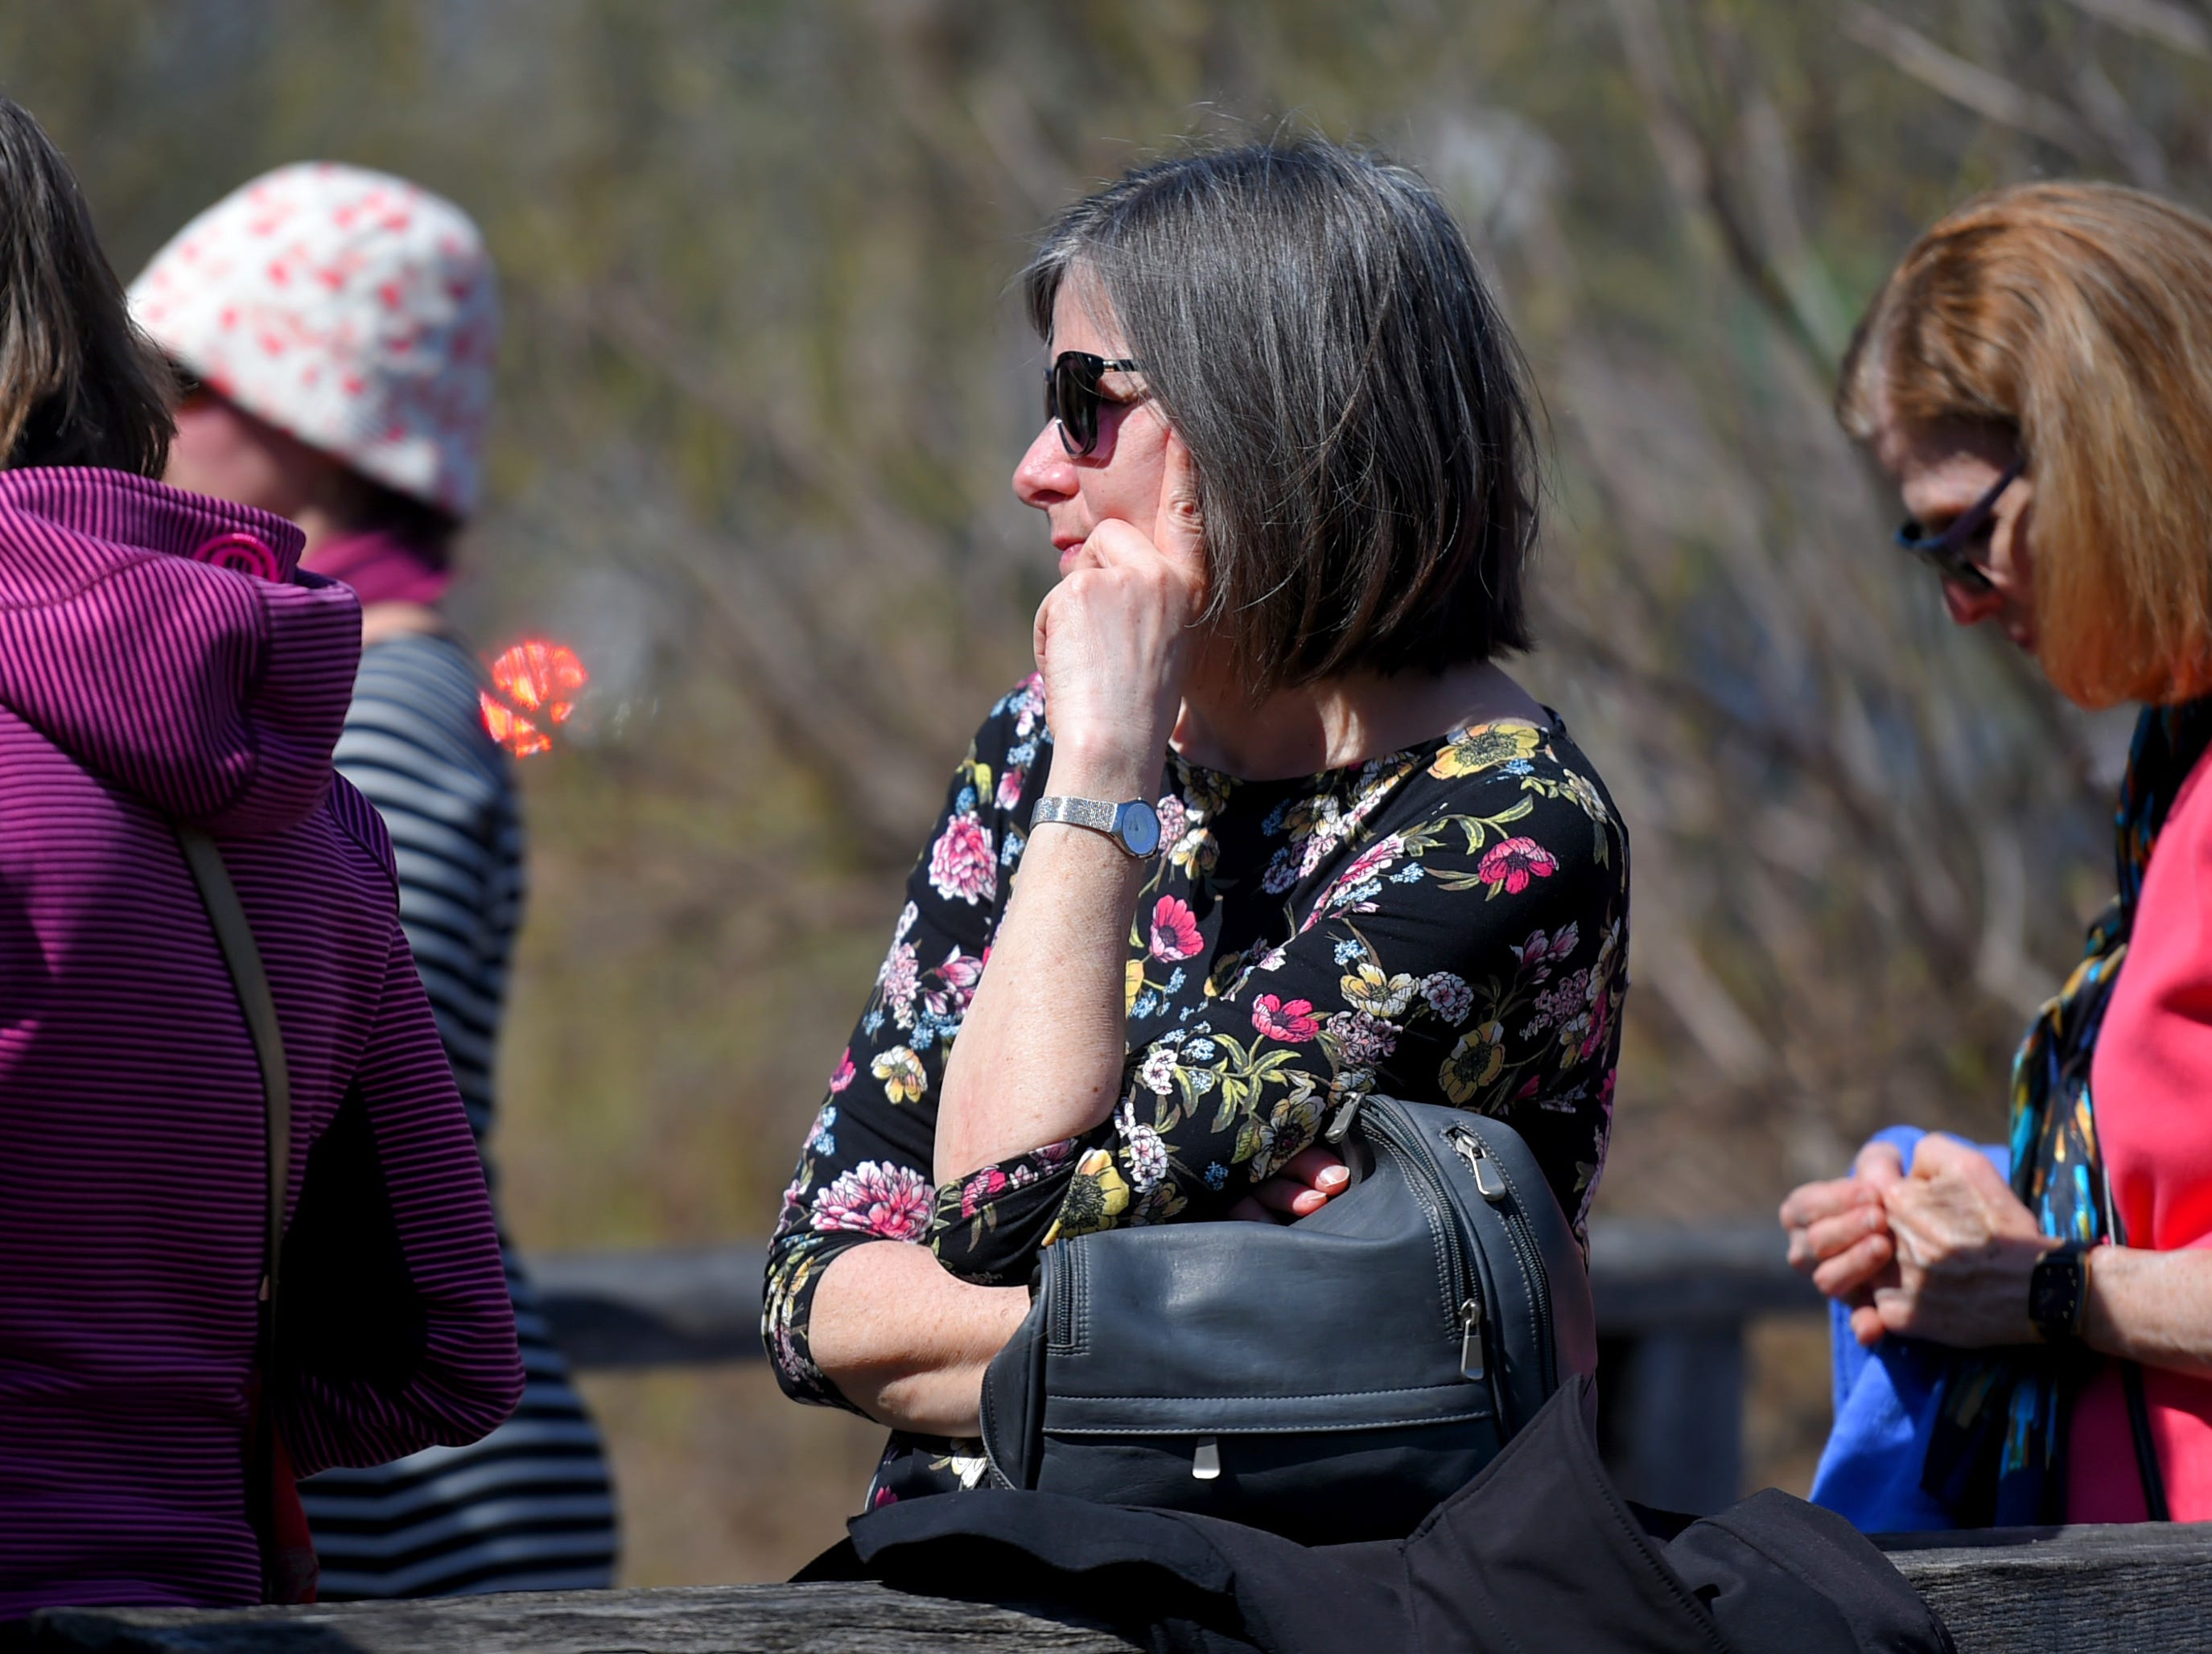 Family, friends, former colleagues and students celebrated the life of Kathleen Downes at the Ithaca Children's Garden on April 17, 2019. Downes, a beloved Ithaca teacher, died unexpectedly last week in a car accident.